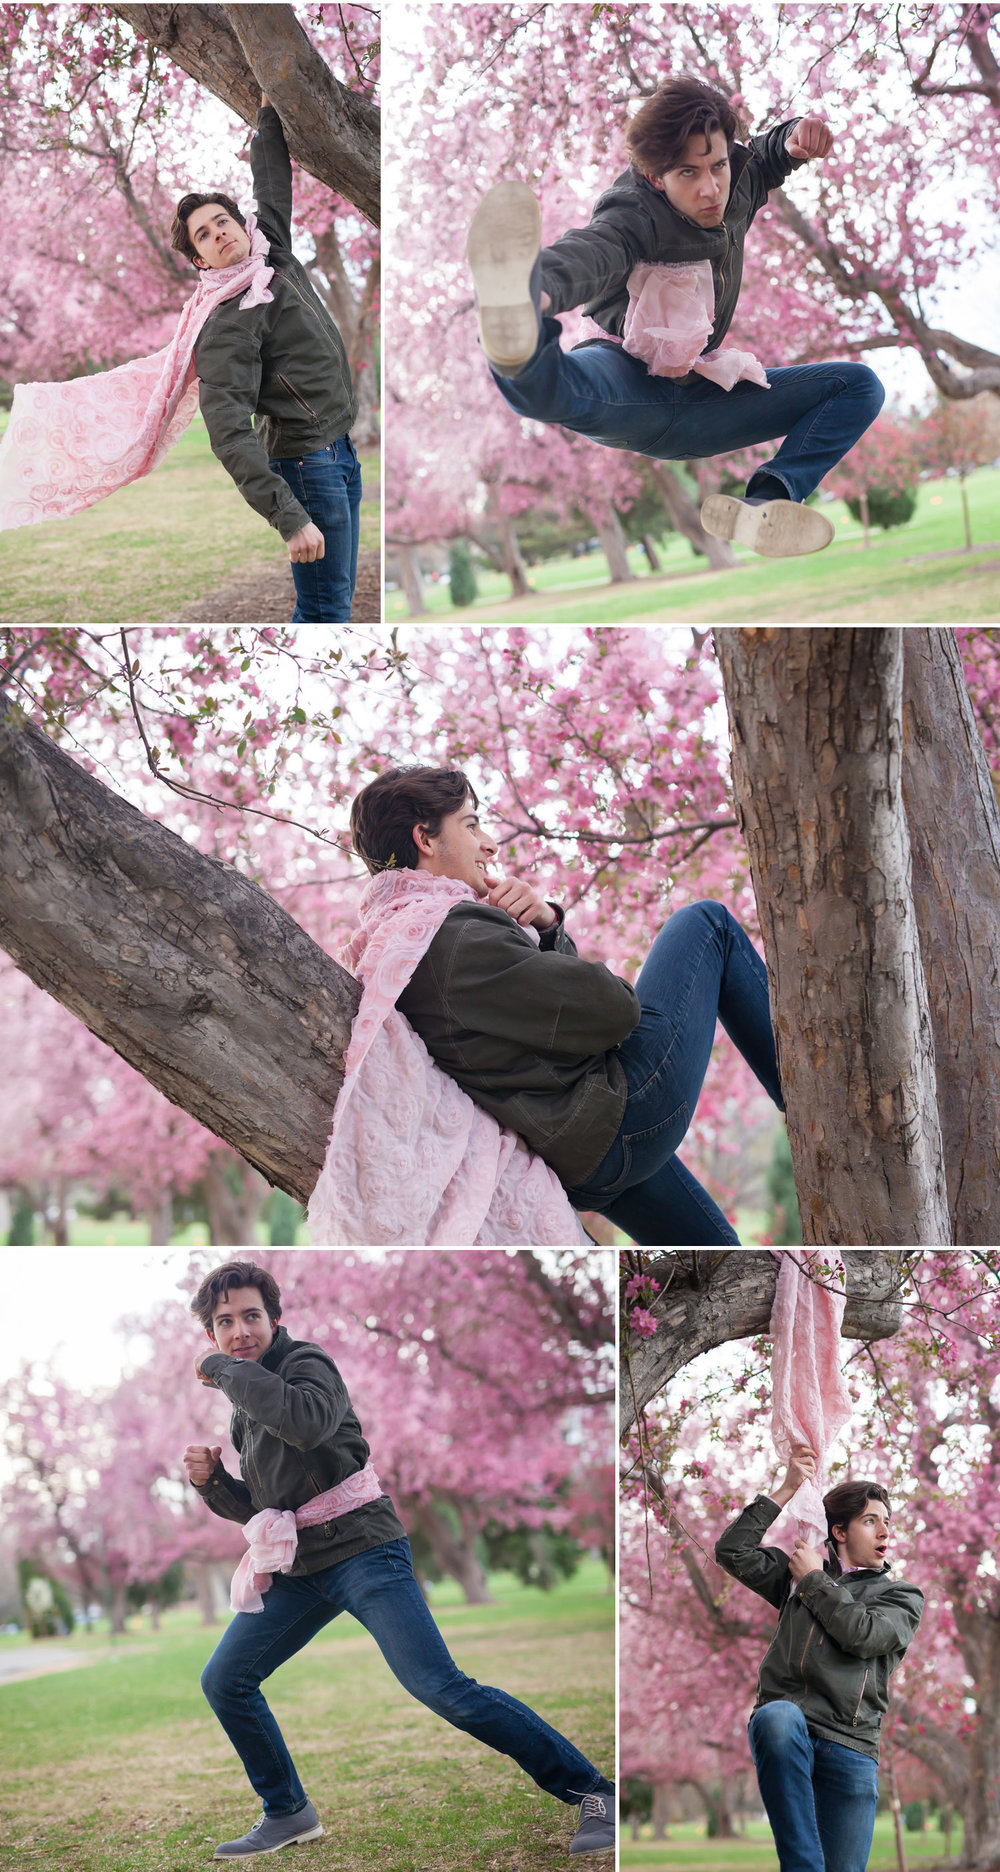 Teenage boy having FUN and being photographed in pink spring flowers, by Denver photographer Jennifer Koskinen, Merritt Portrait Studio